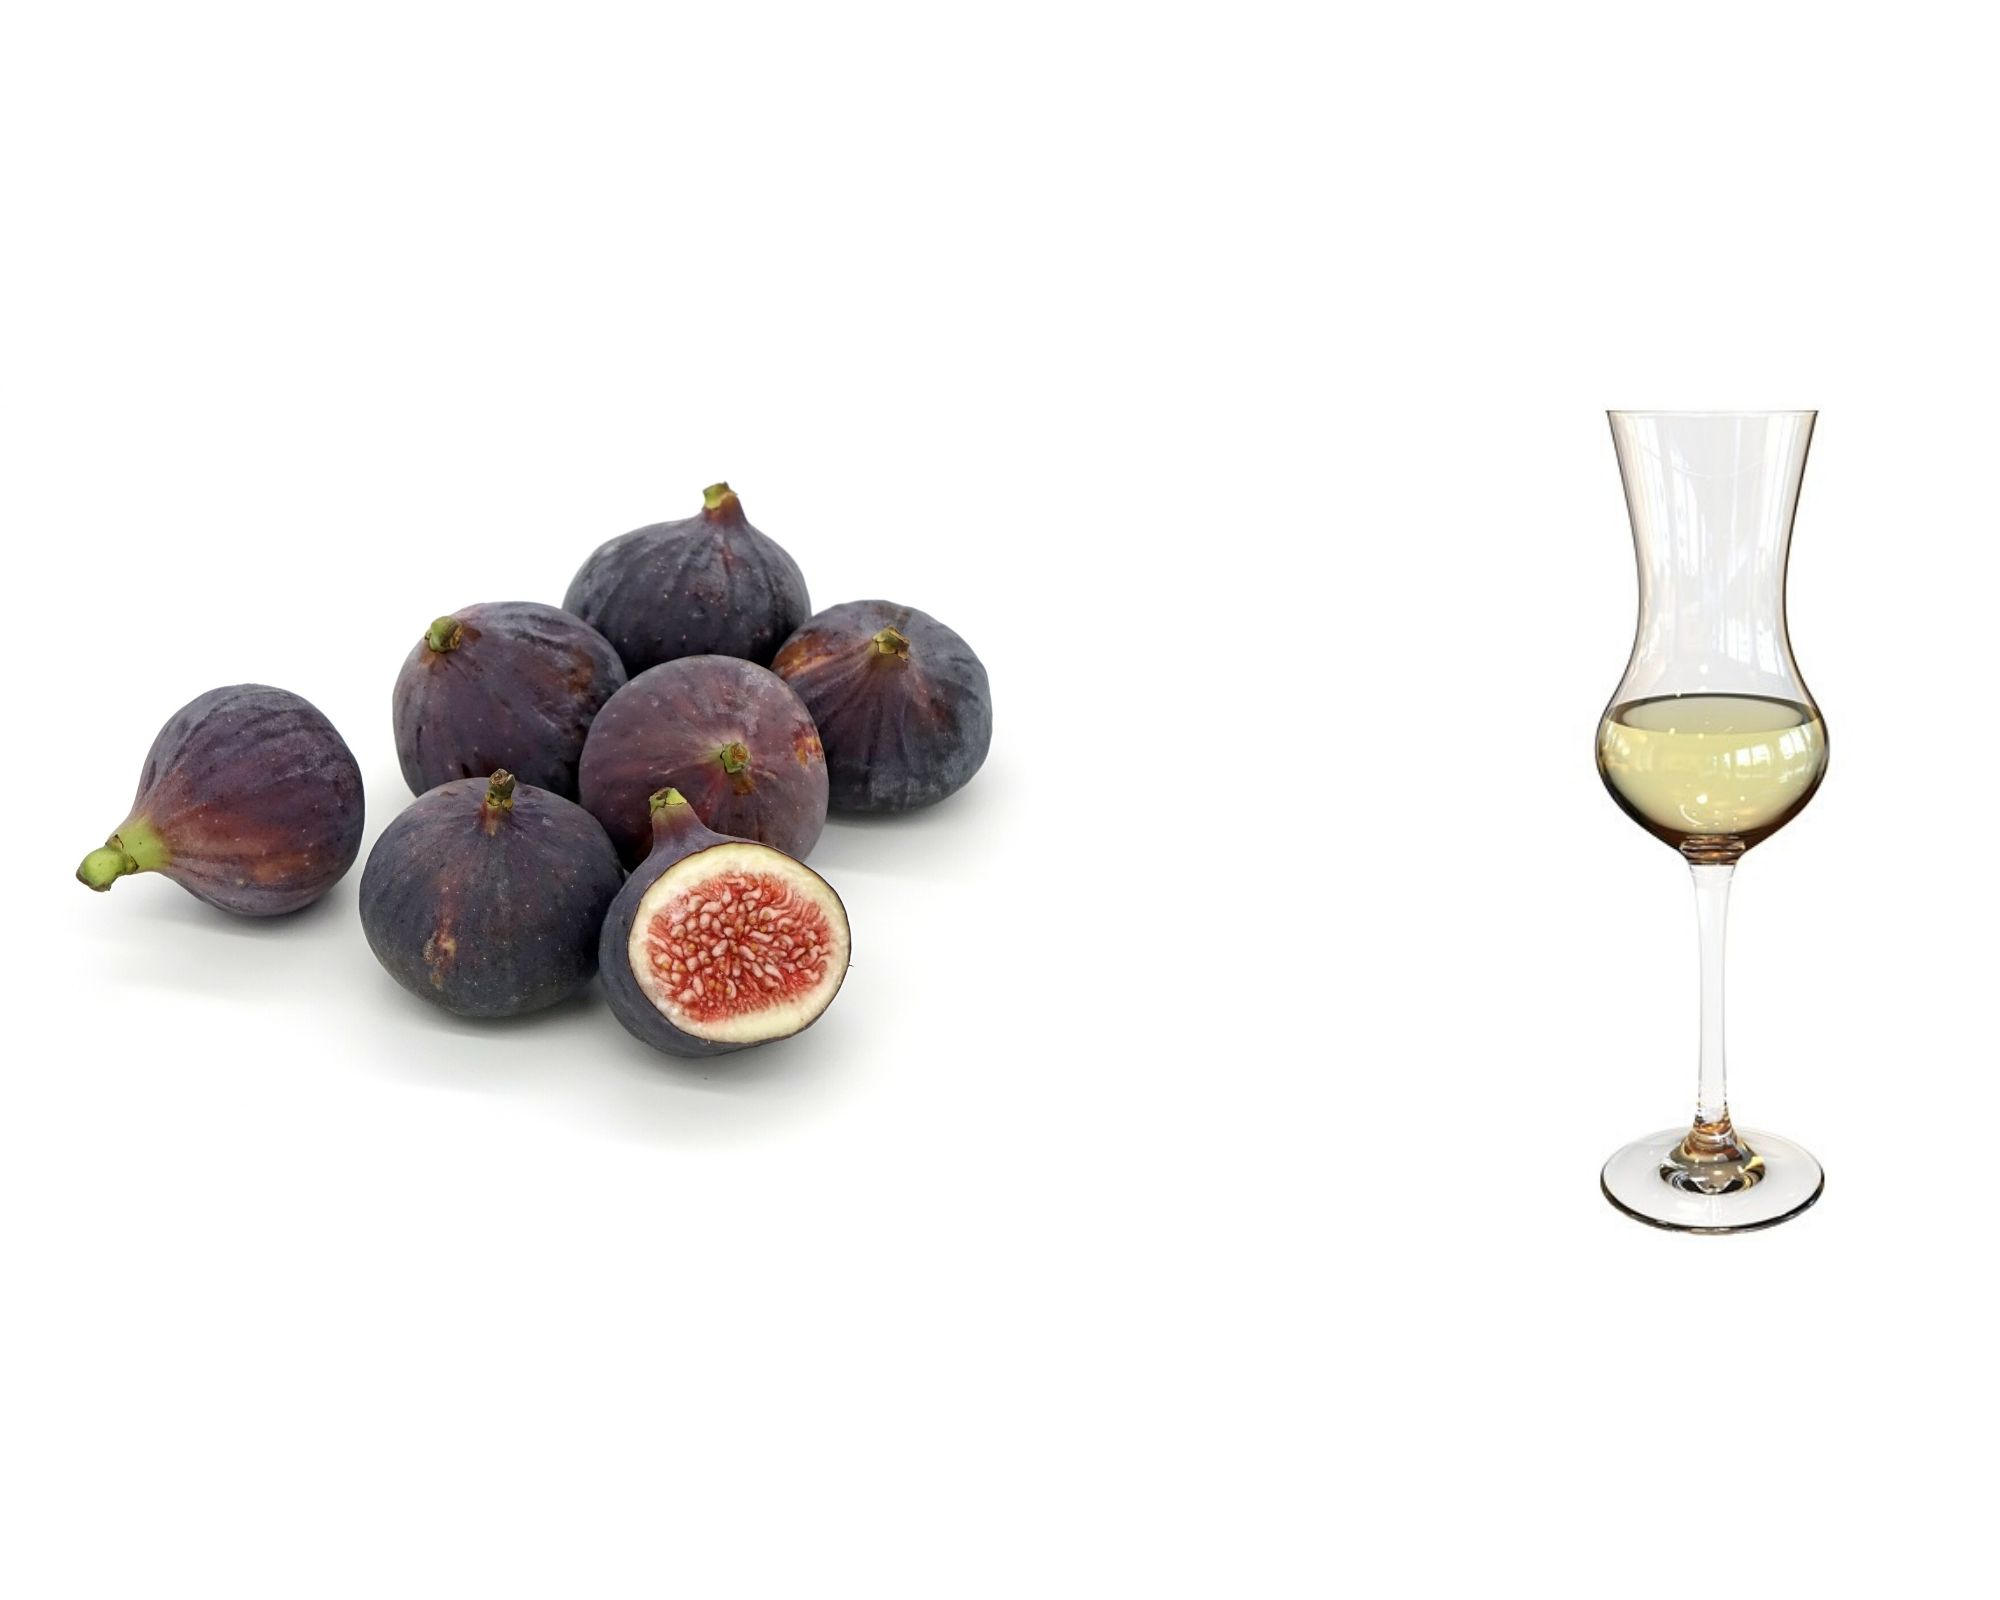 FICHI SCIROPPATI ALLA GRAPPA BARRIQUE – FIGS IN SYRUP WITH GRAPPA BARRICADE